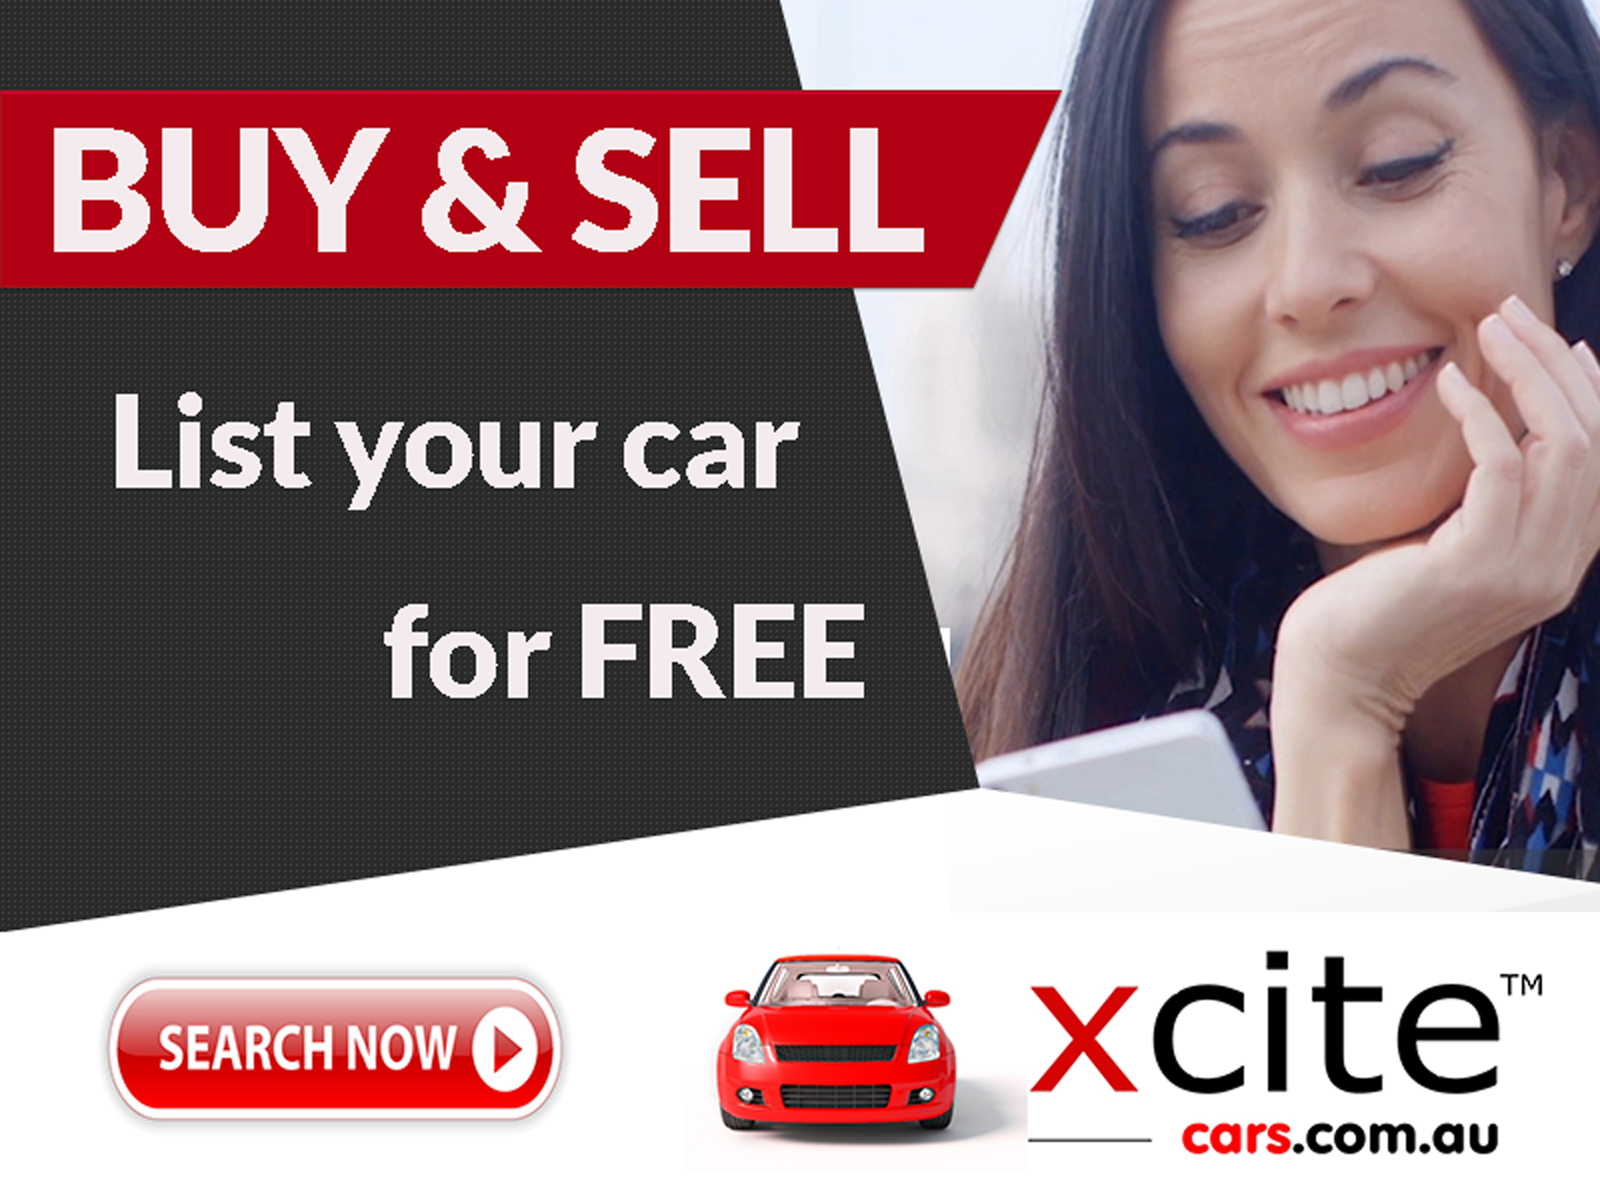 View our Xcite Cars Inventory